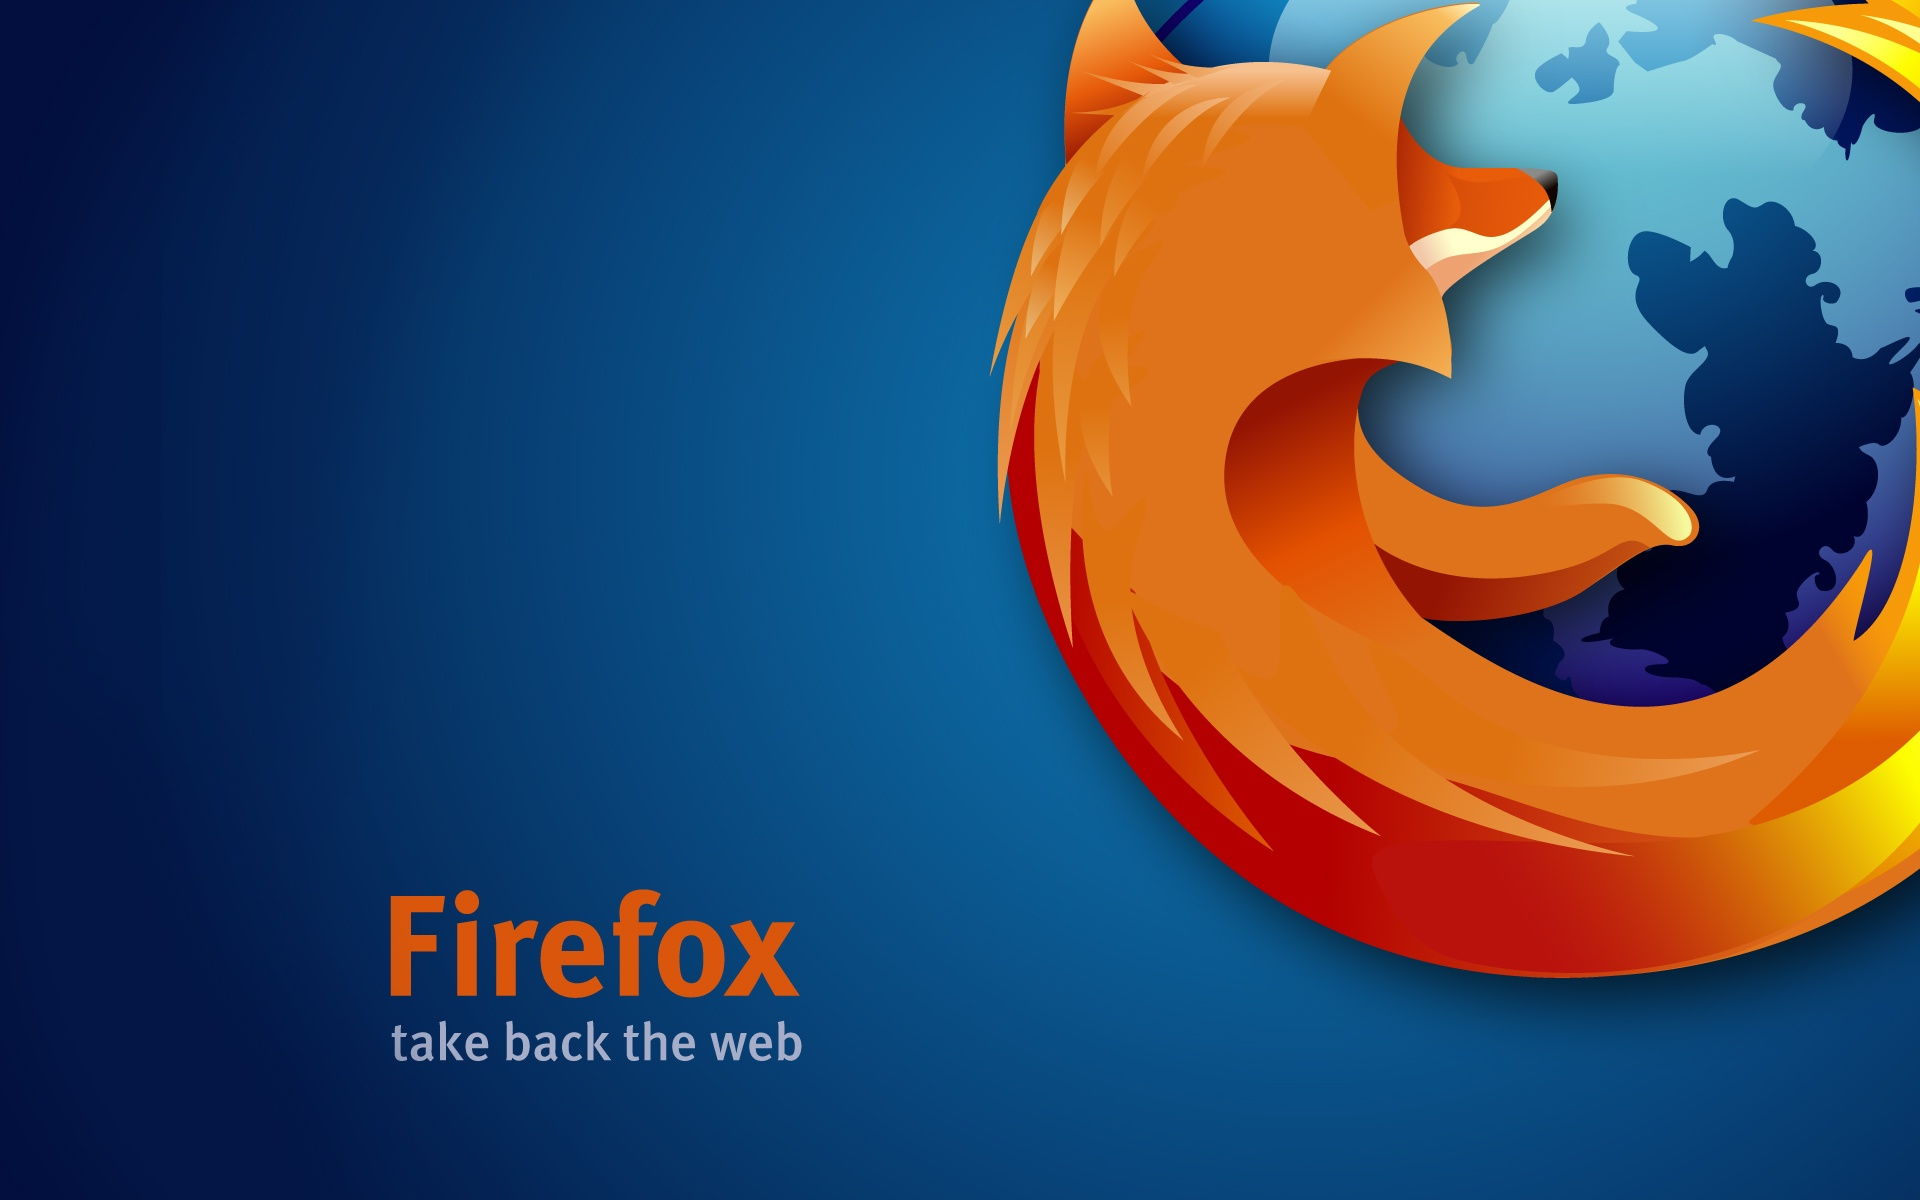 How to download mozilla firefox update for new version in 2017 in.